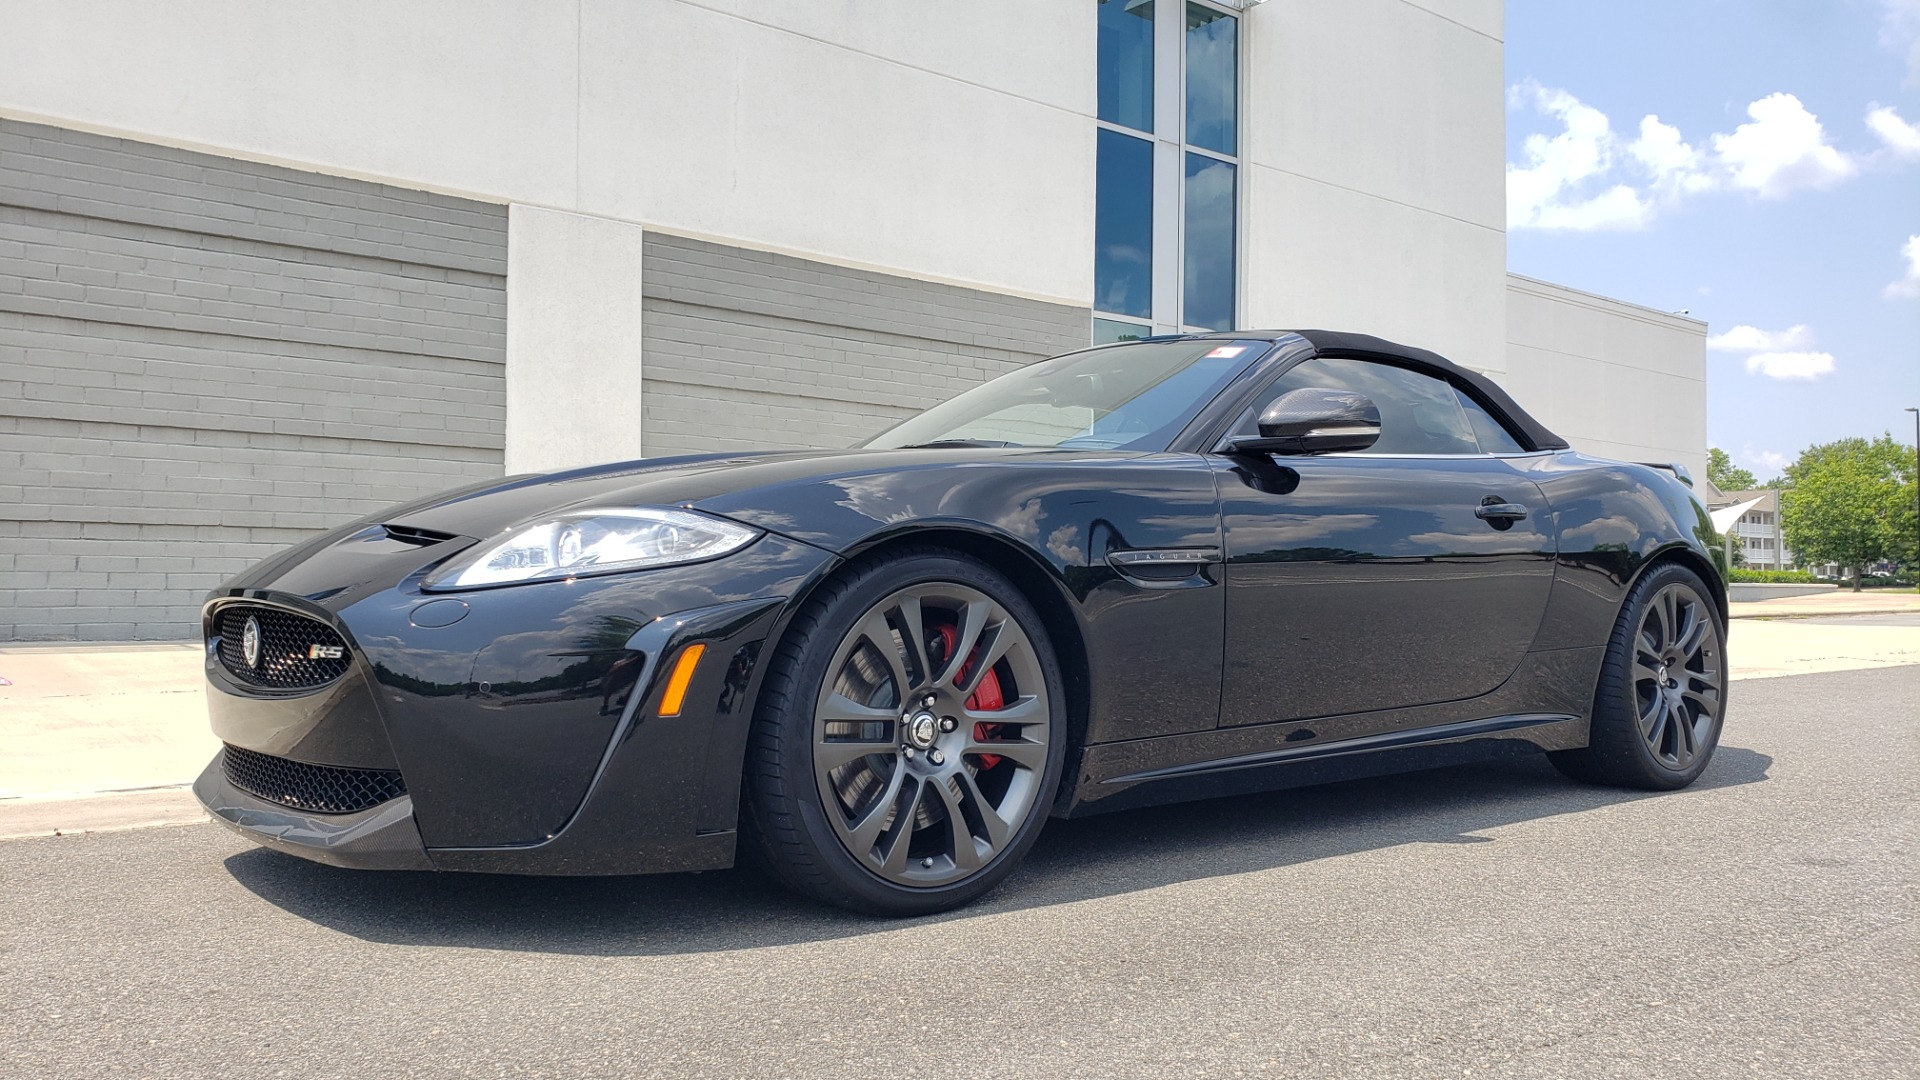 Used 2013 Jaguar XK R-S CONVERTIBLE / SC 5.0L V8 (550HP) / ZF 6-SPD AUTO / NAV / REARVIEW for sale $74,995 at Formula Imports in Charlotte NC 28227 6